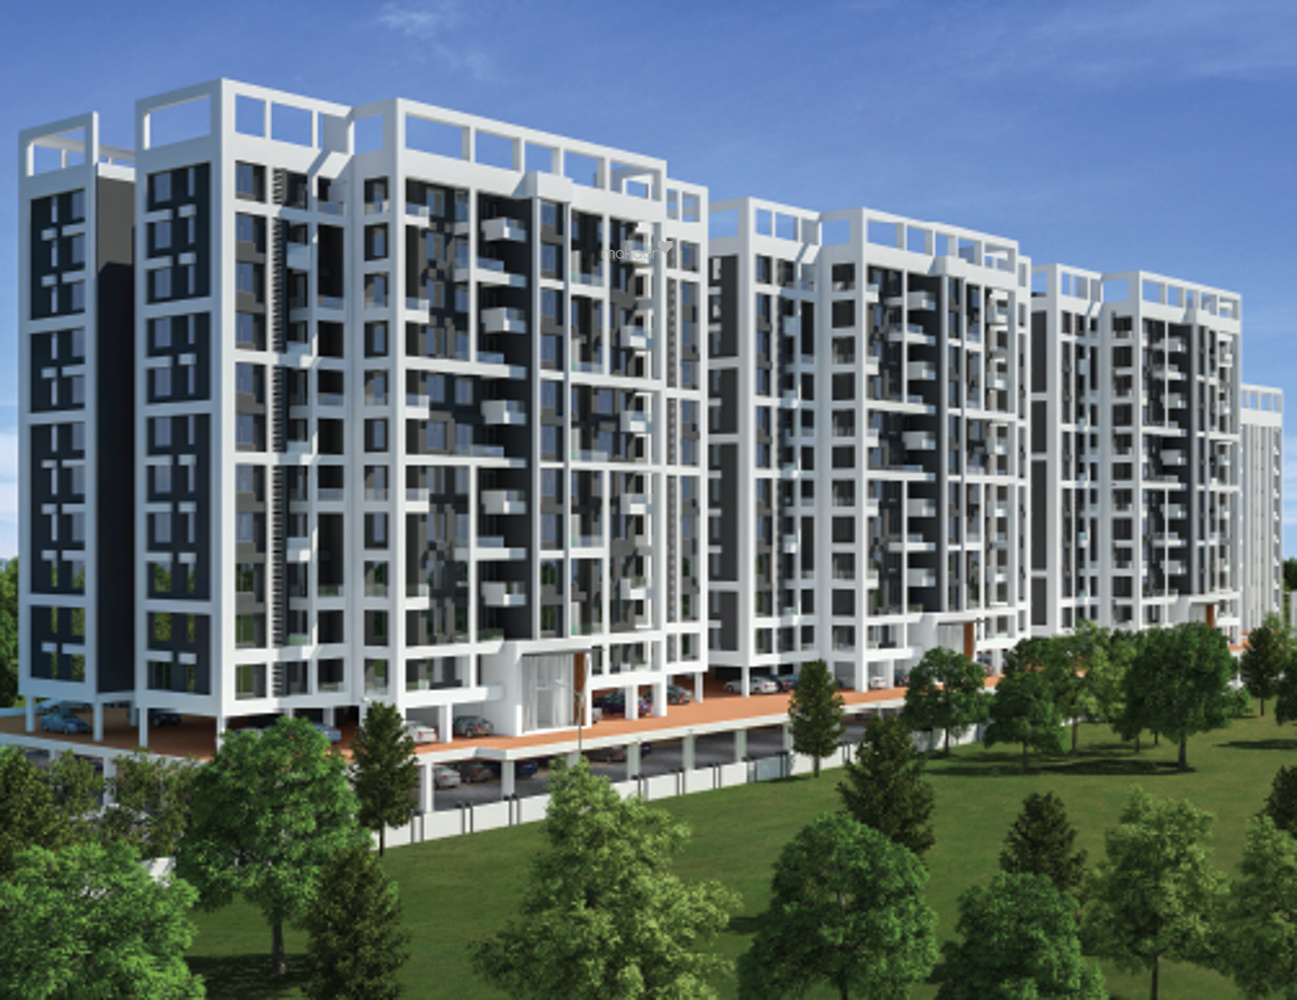 1004 sq ft 2BHK 2BHK+2T (1,004 sq ft) Property By Proptiger In Prolife, Wakad